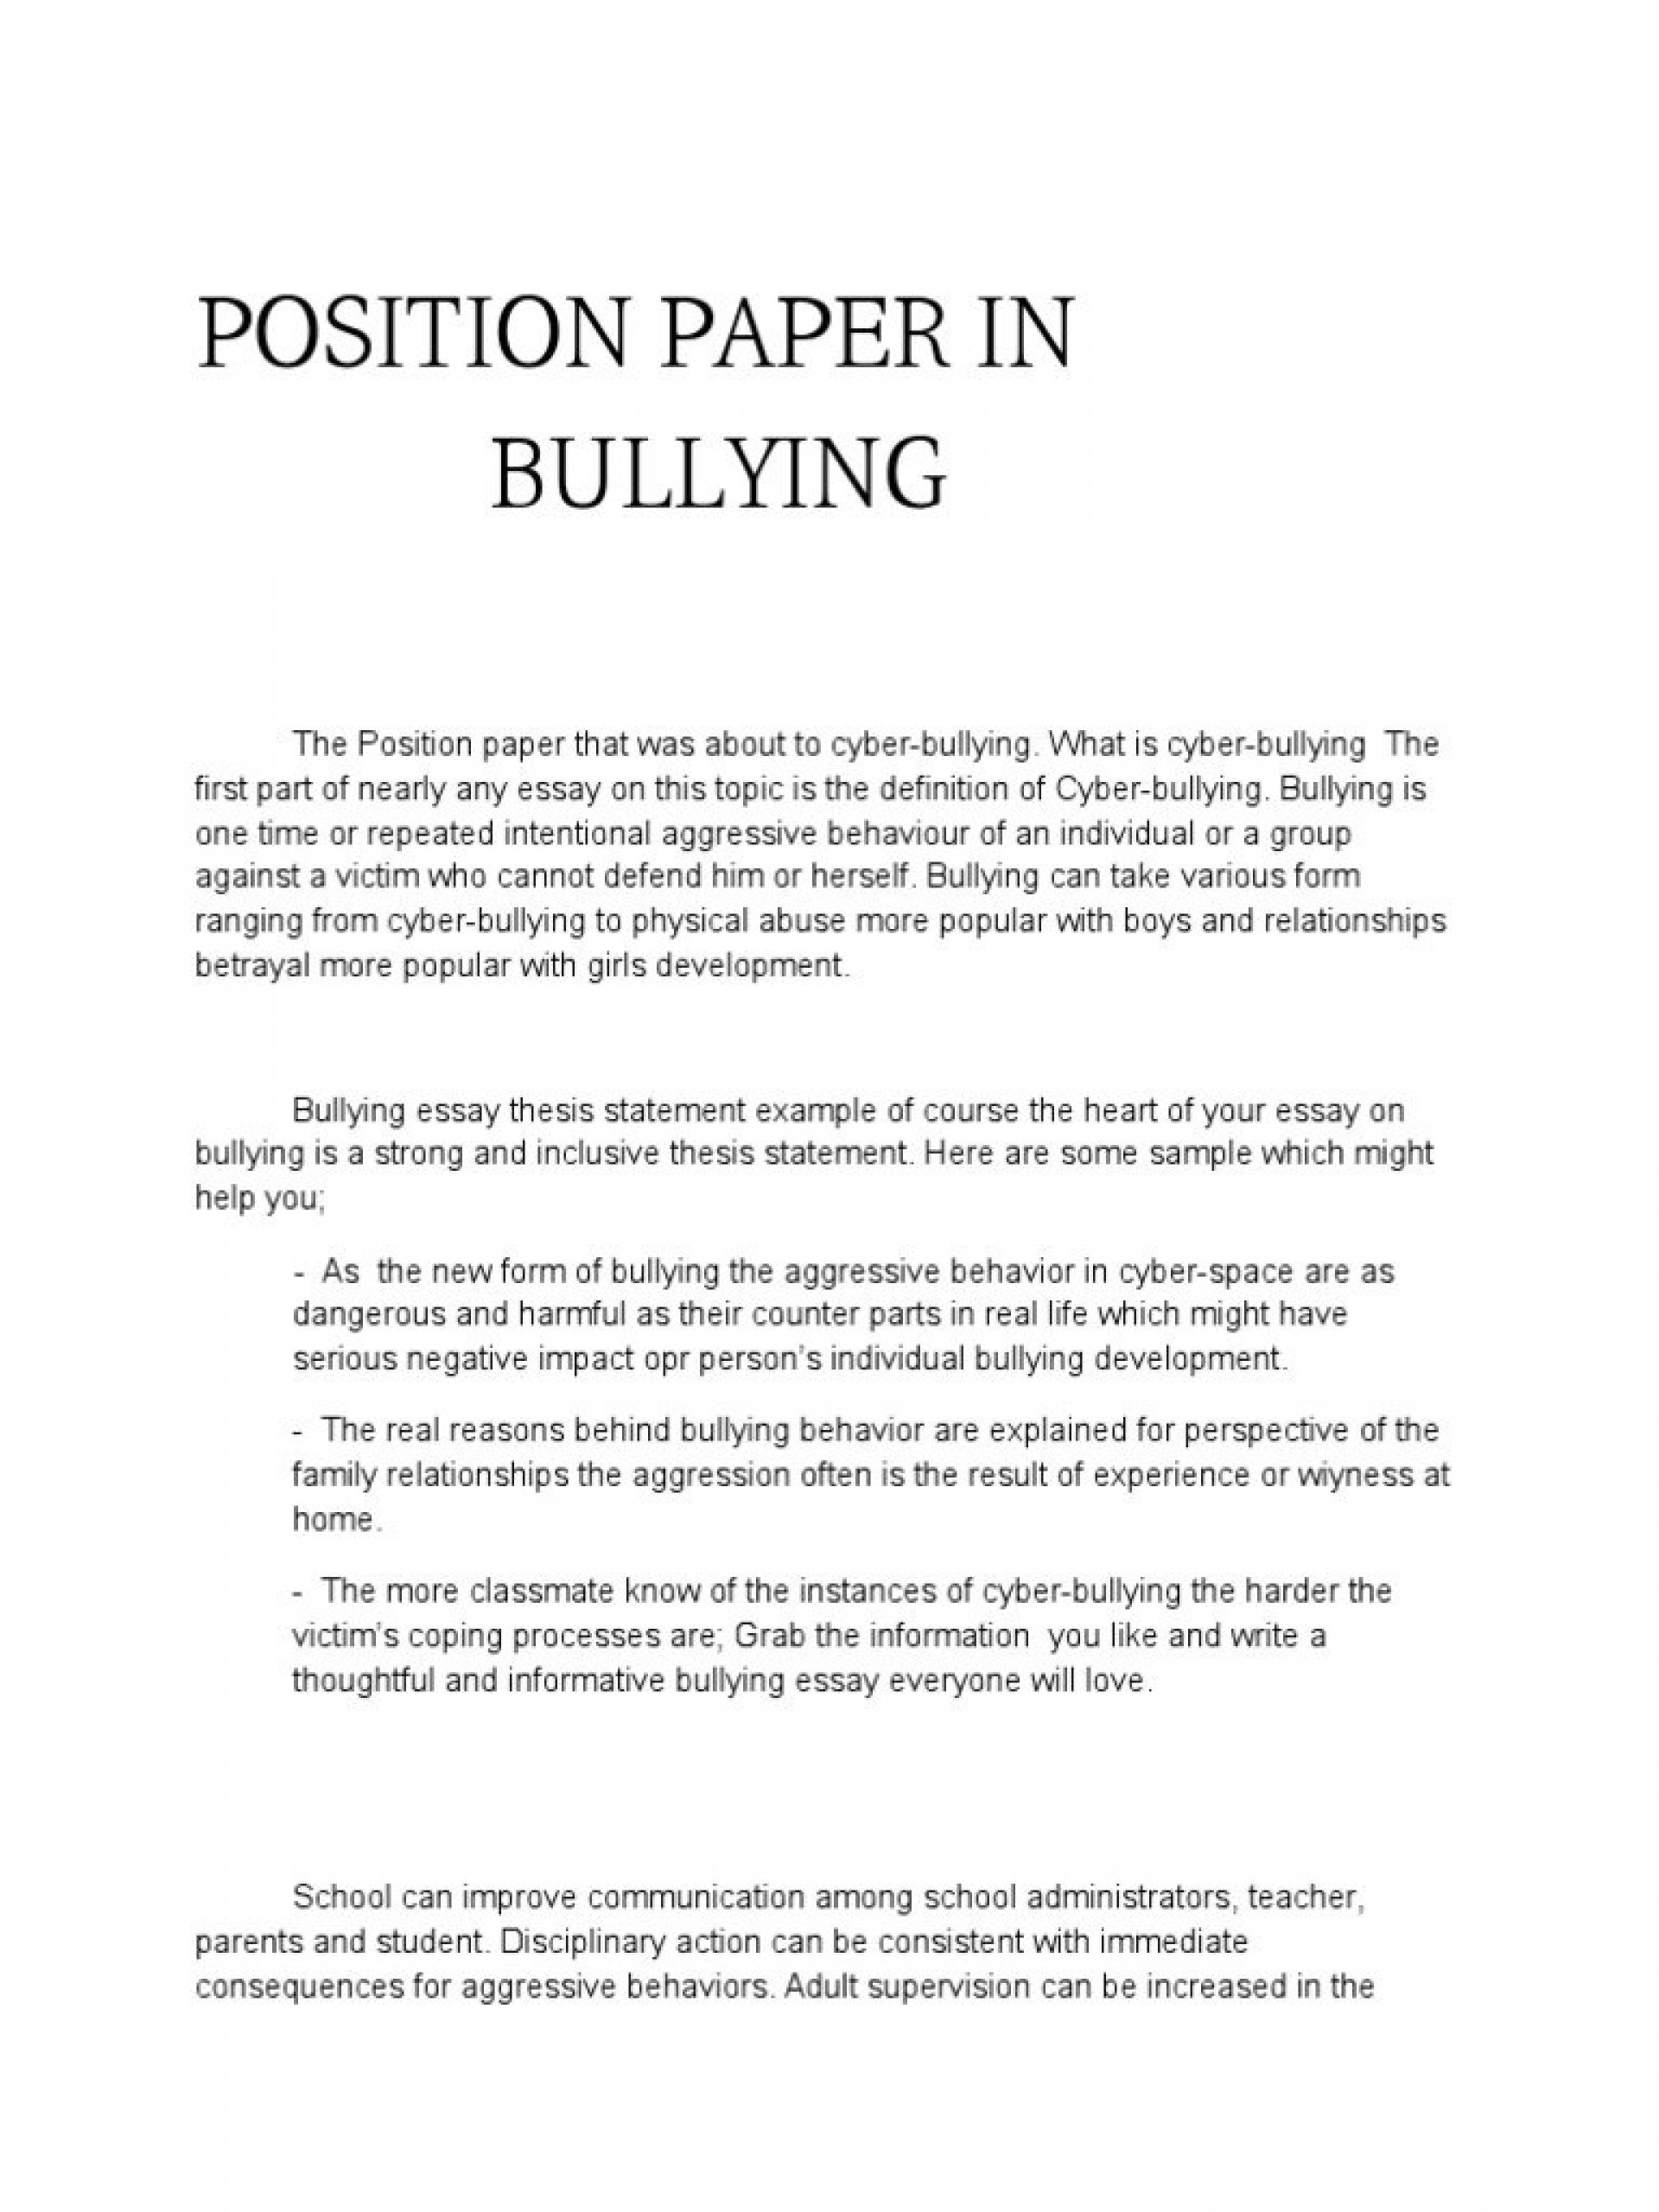 001 essay example bullying bully essays about co